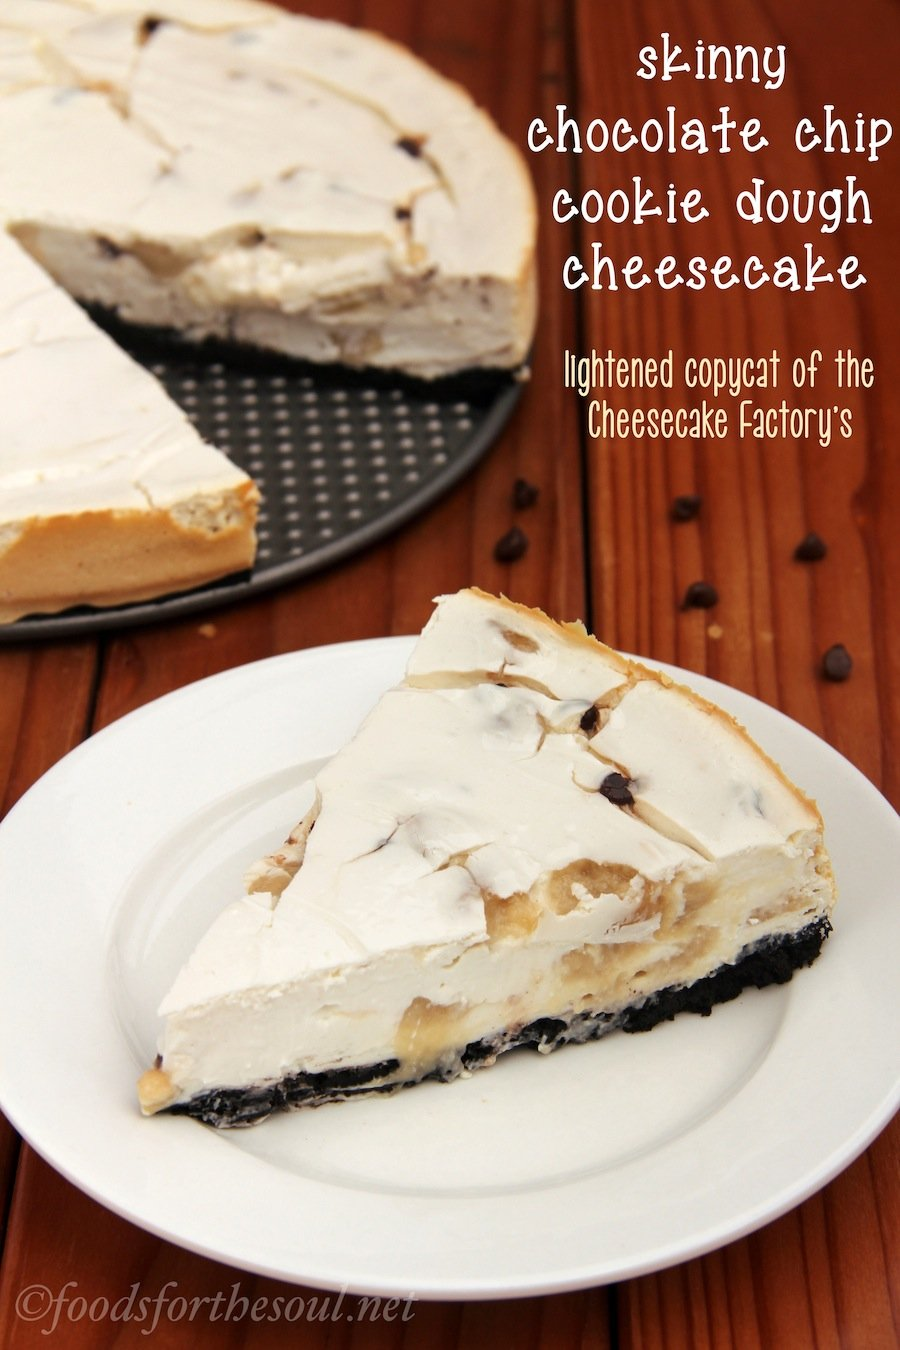 Chocolate Chip Cookie Dough Cheesecake. You could eat 4 slices of this and still consume fewer calories than from 1 piece of the Cheesecake Factory's!